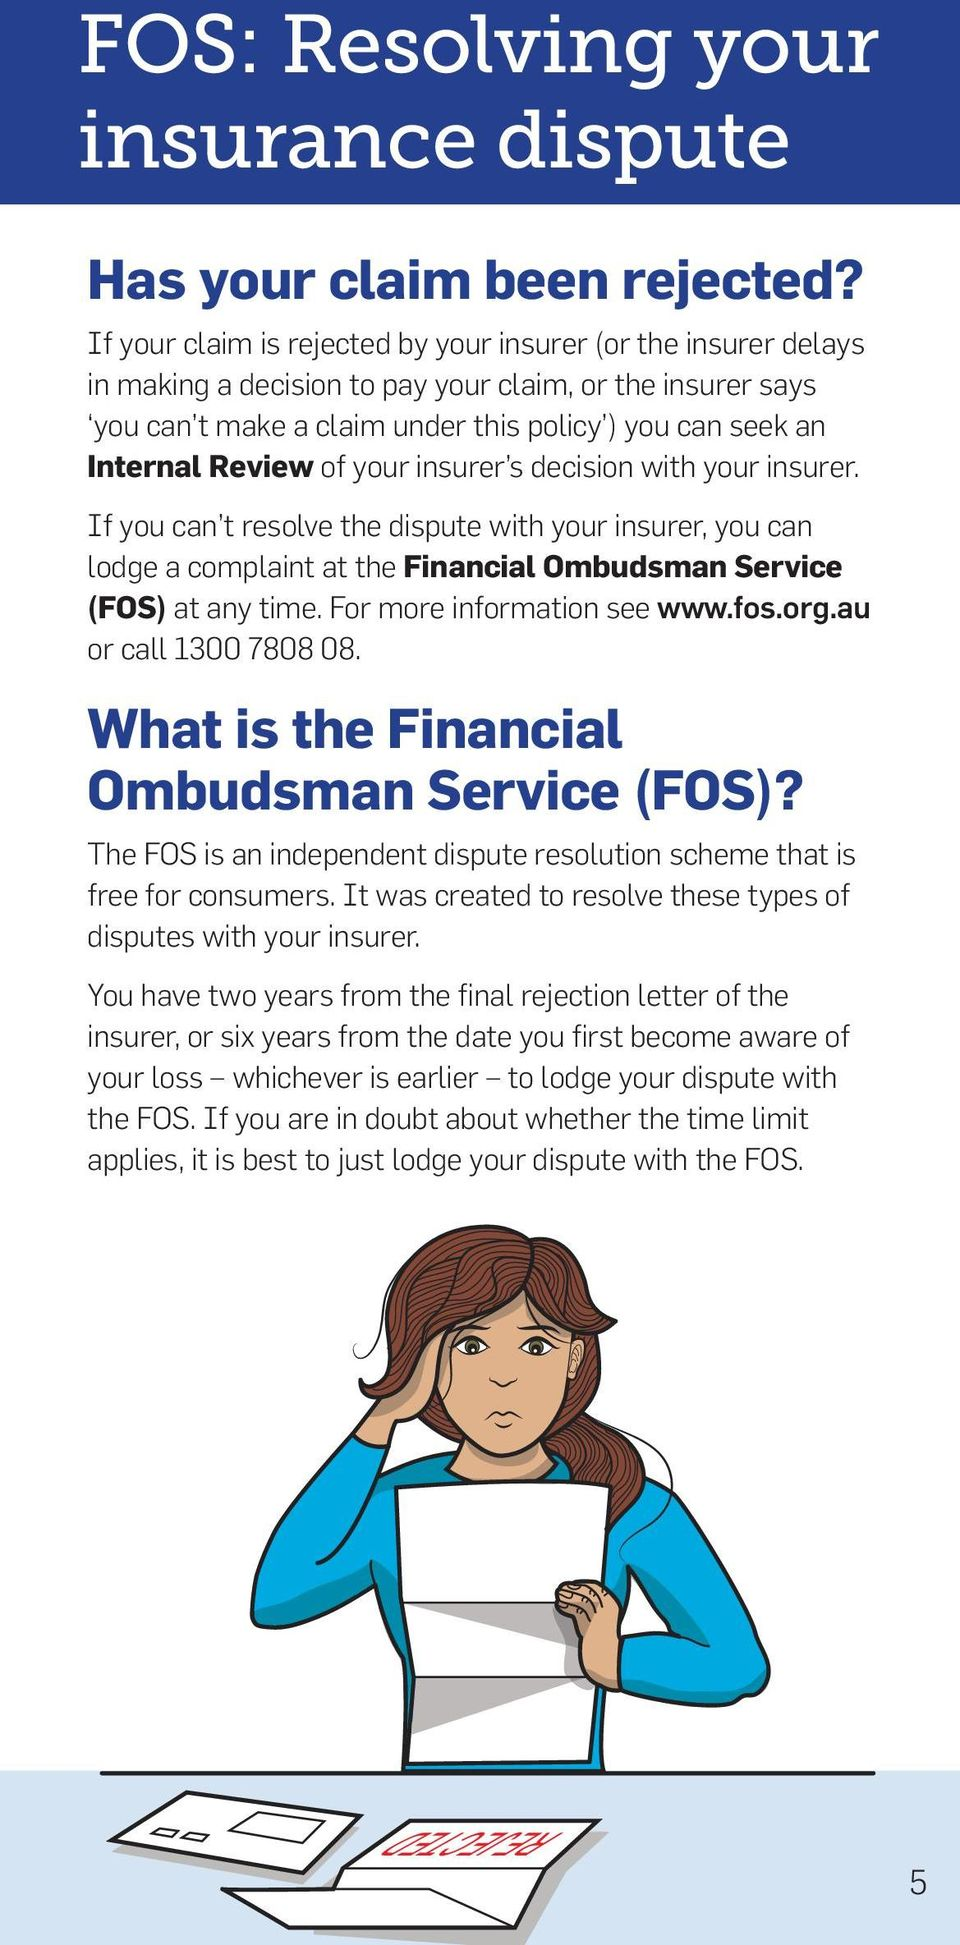 of your insurer s decision with your insurer. If you can t resolve the dispute with your insurer, you can lodge a complaint at the Financial Ombudsman Service (FOS) at any time.